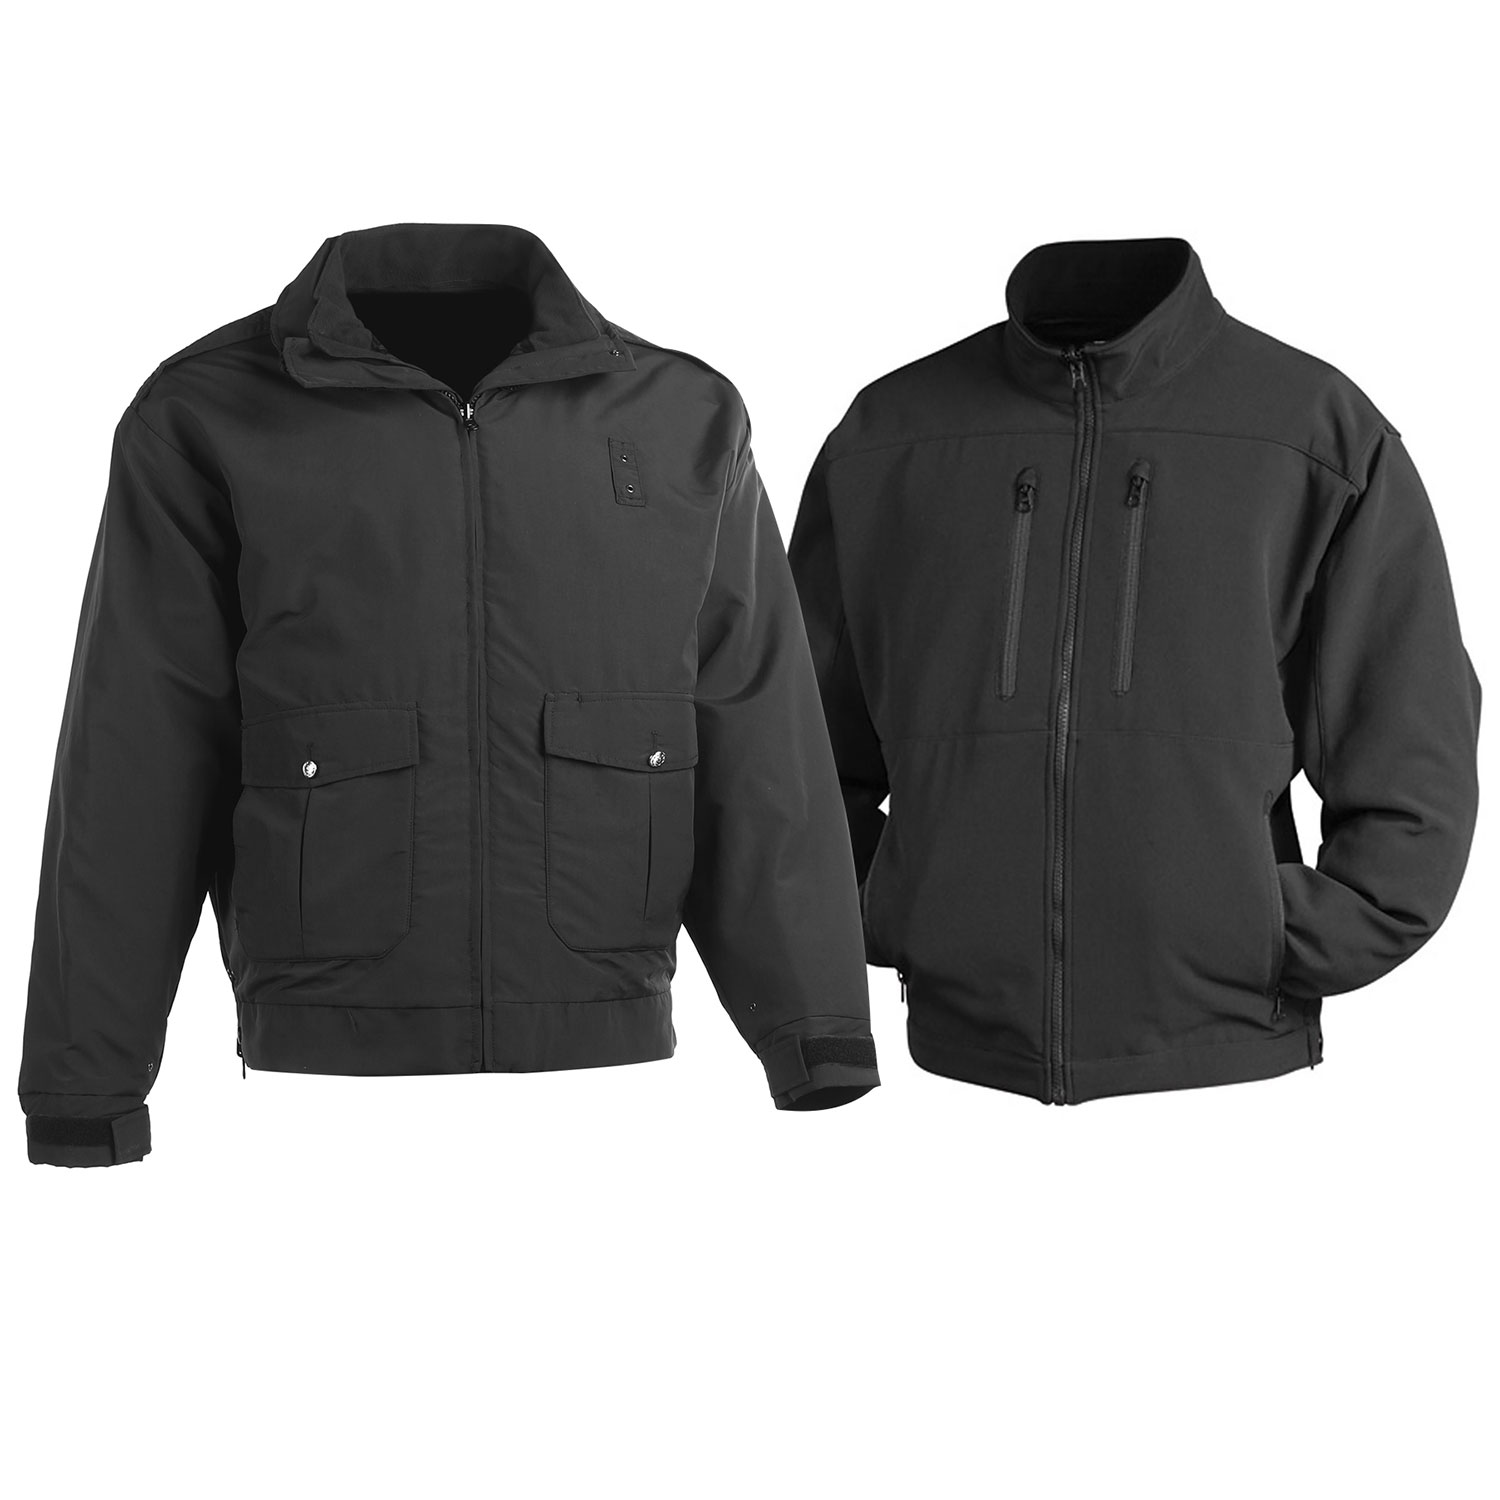 Flying Cross Endurance ANSI 2 Reversible Jacket System